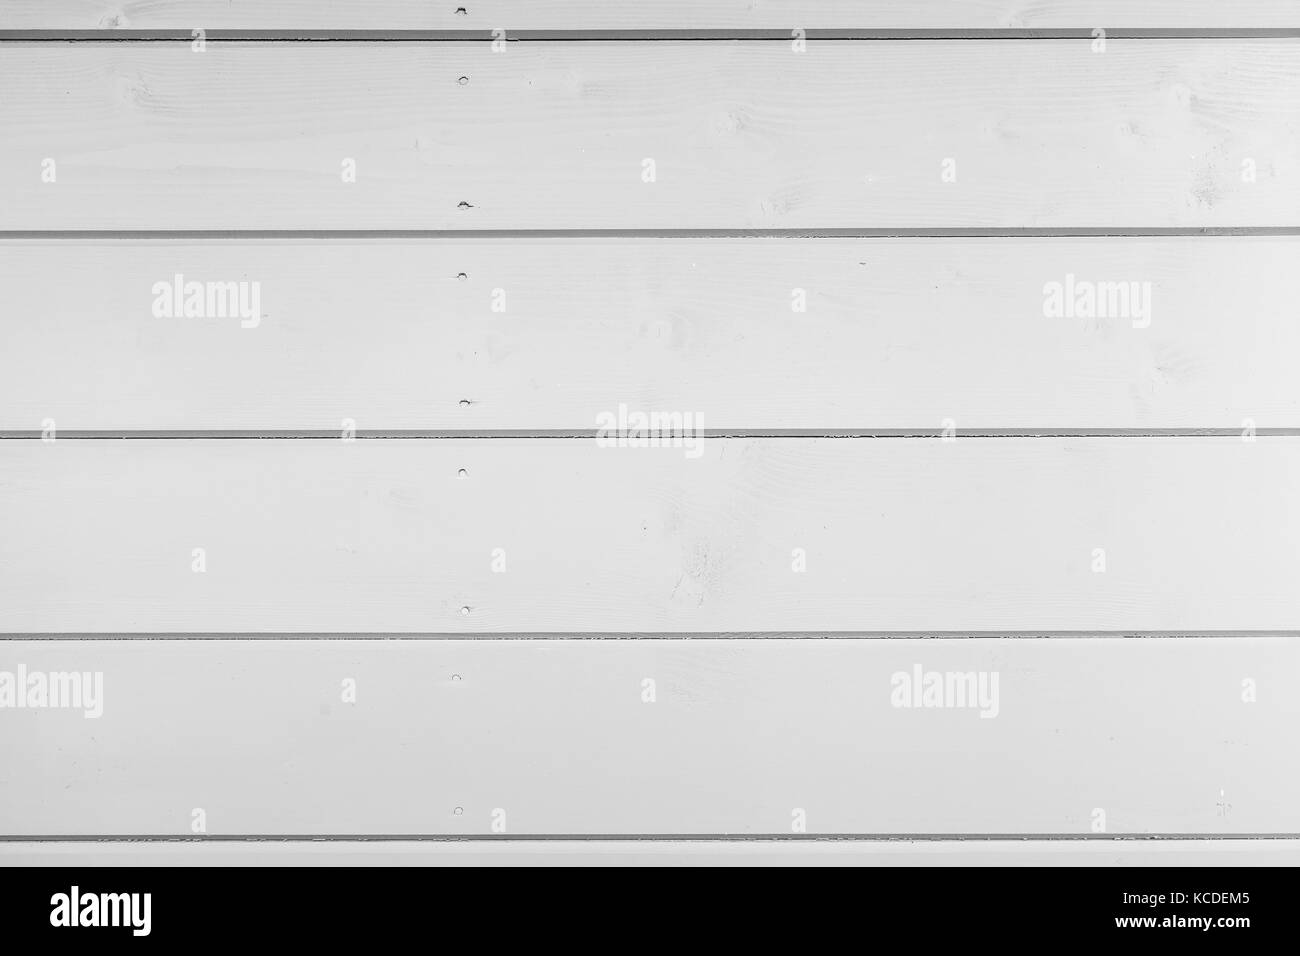 Natural white wooden wall, frontal view, background photo texture - Stock Image